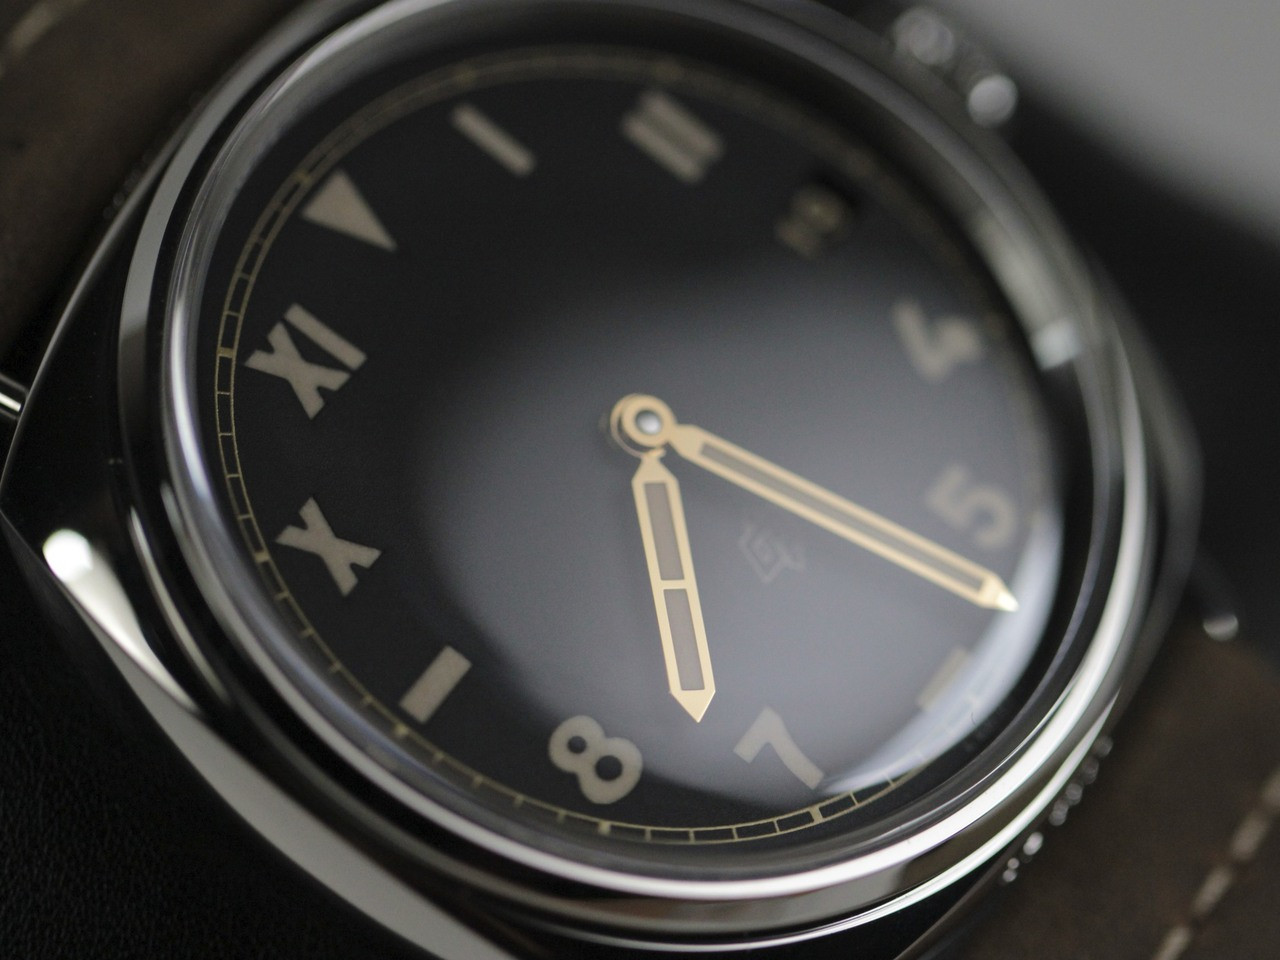 Dial & Hands - New Panerai Watch - Radiomir California 3 Days PAM 424 - www.Legendoftime.com - Chicago Watch Center